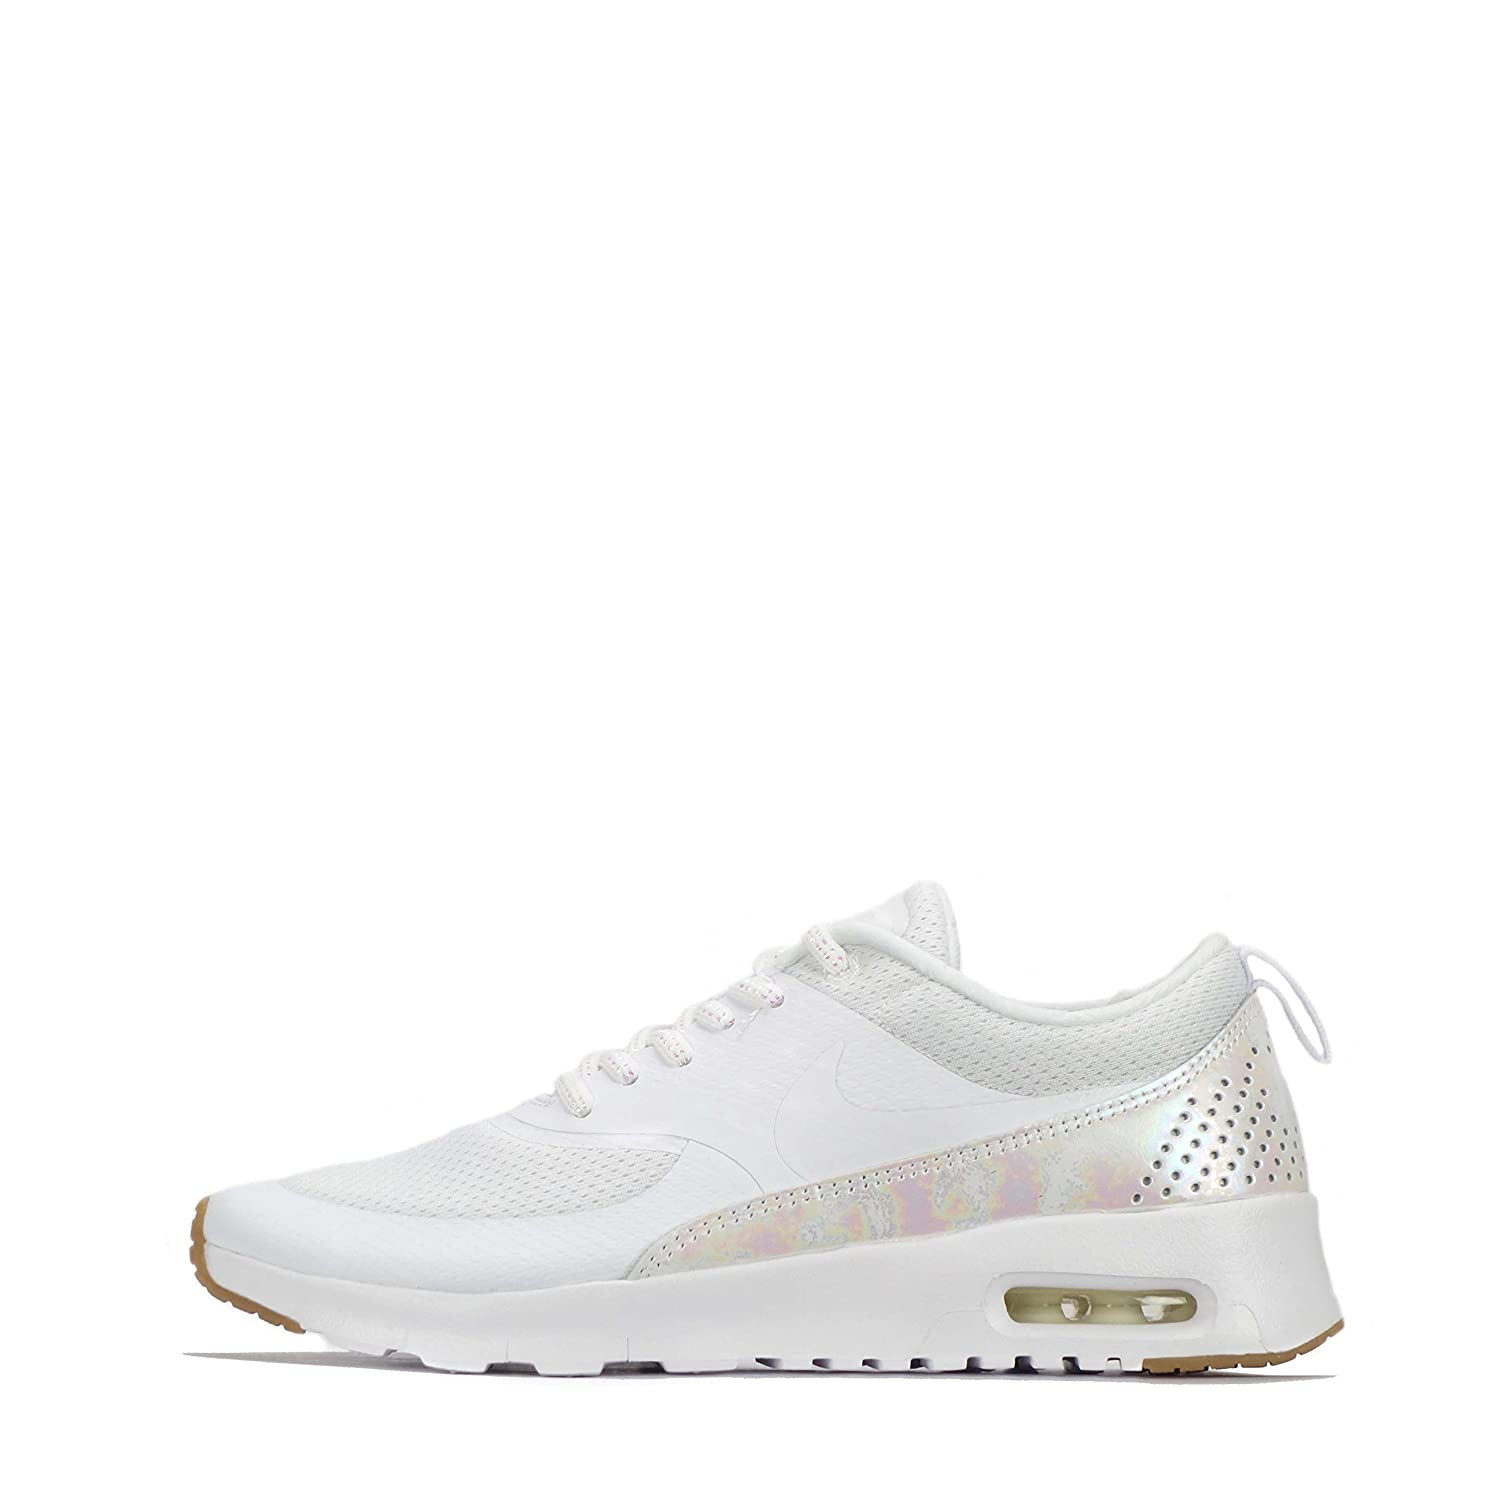 best loved b2578 41a74 Nike Air Max Thea SE Youth Sneaker: Amazon.ca: Shoes & Handbags